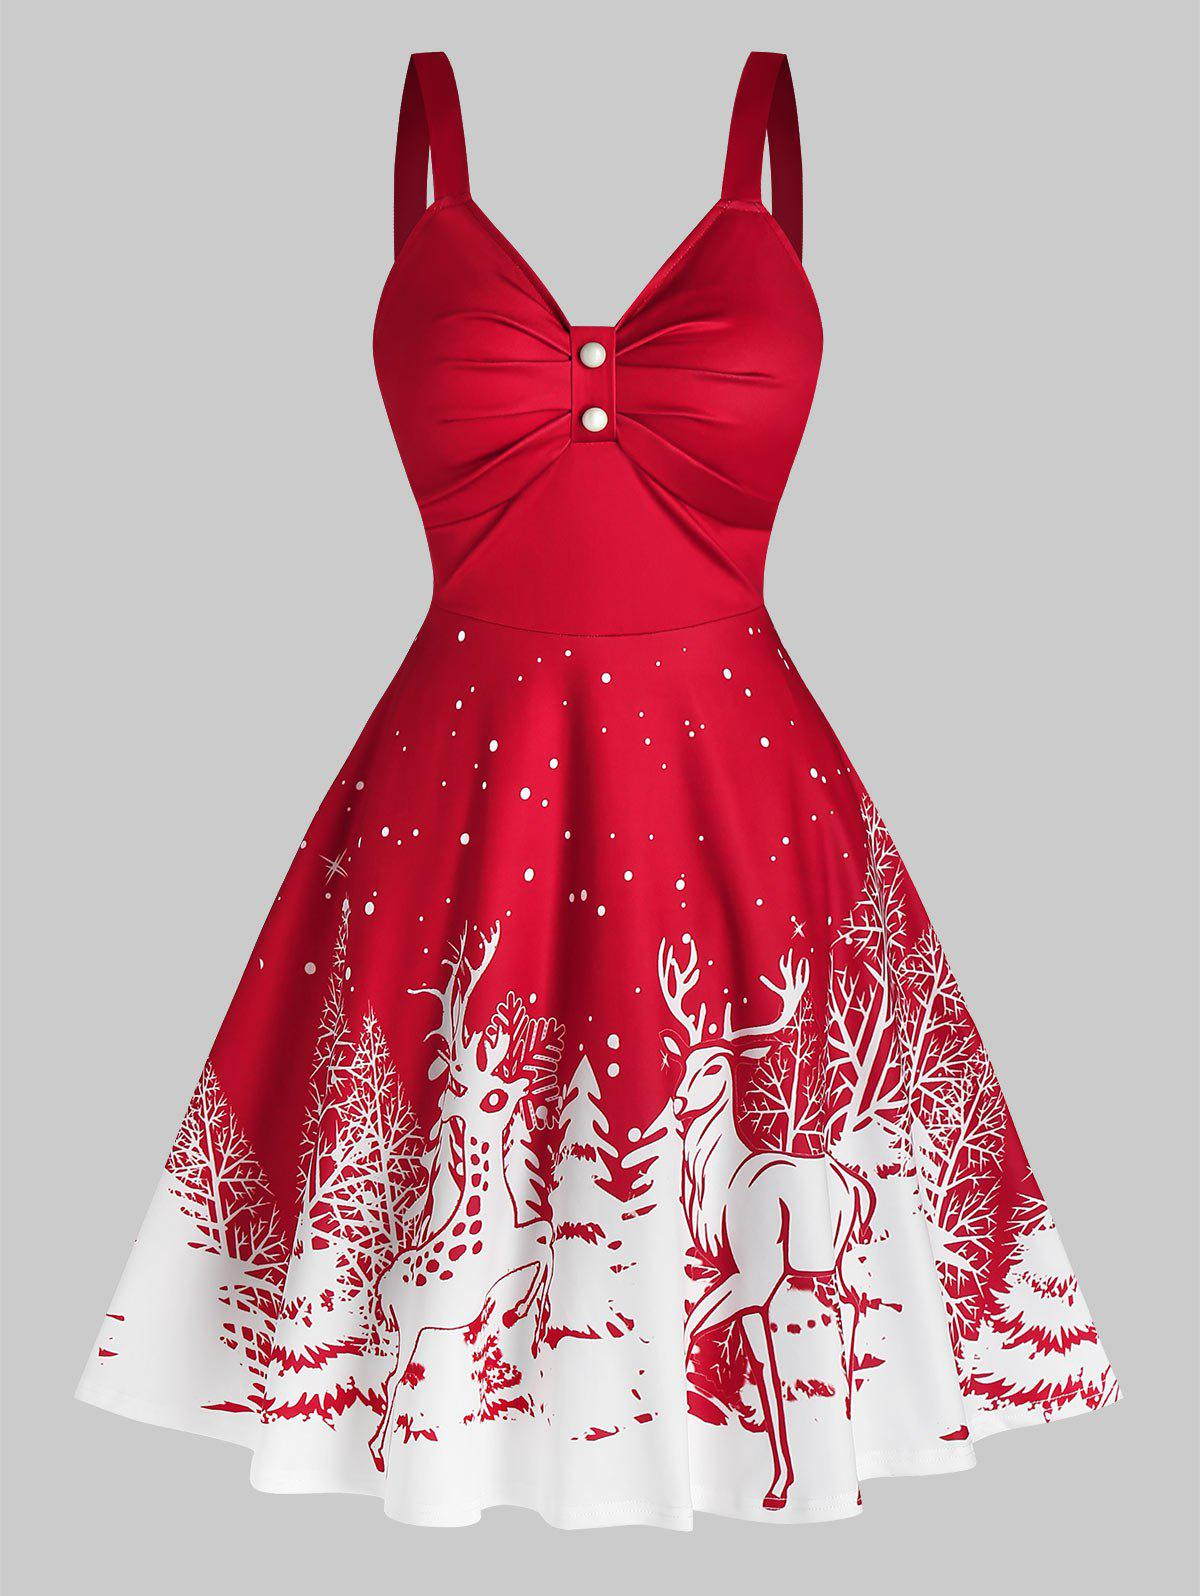 Store Elk Snowflake Print Christmas Dress